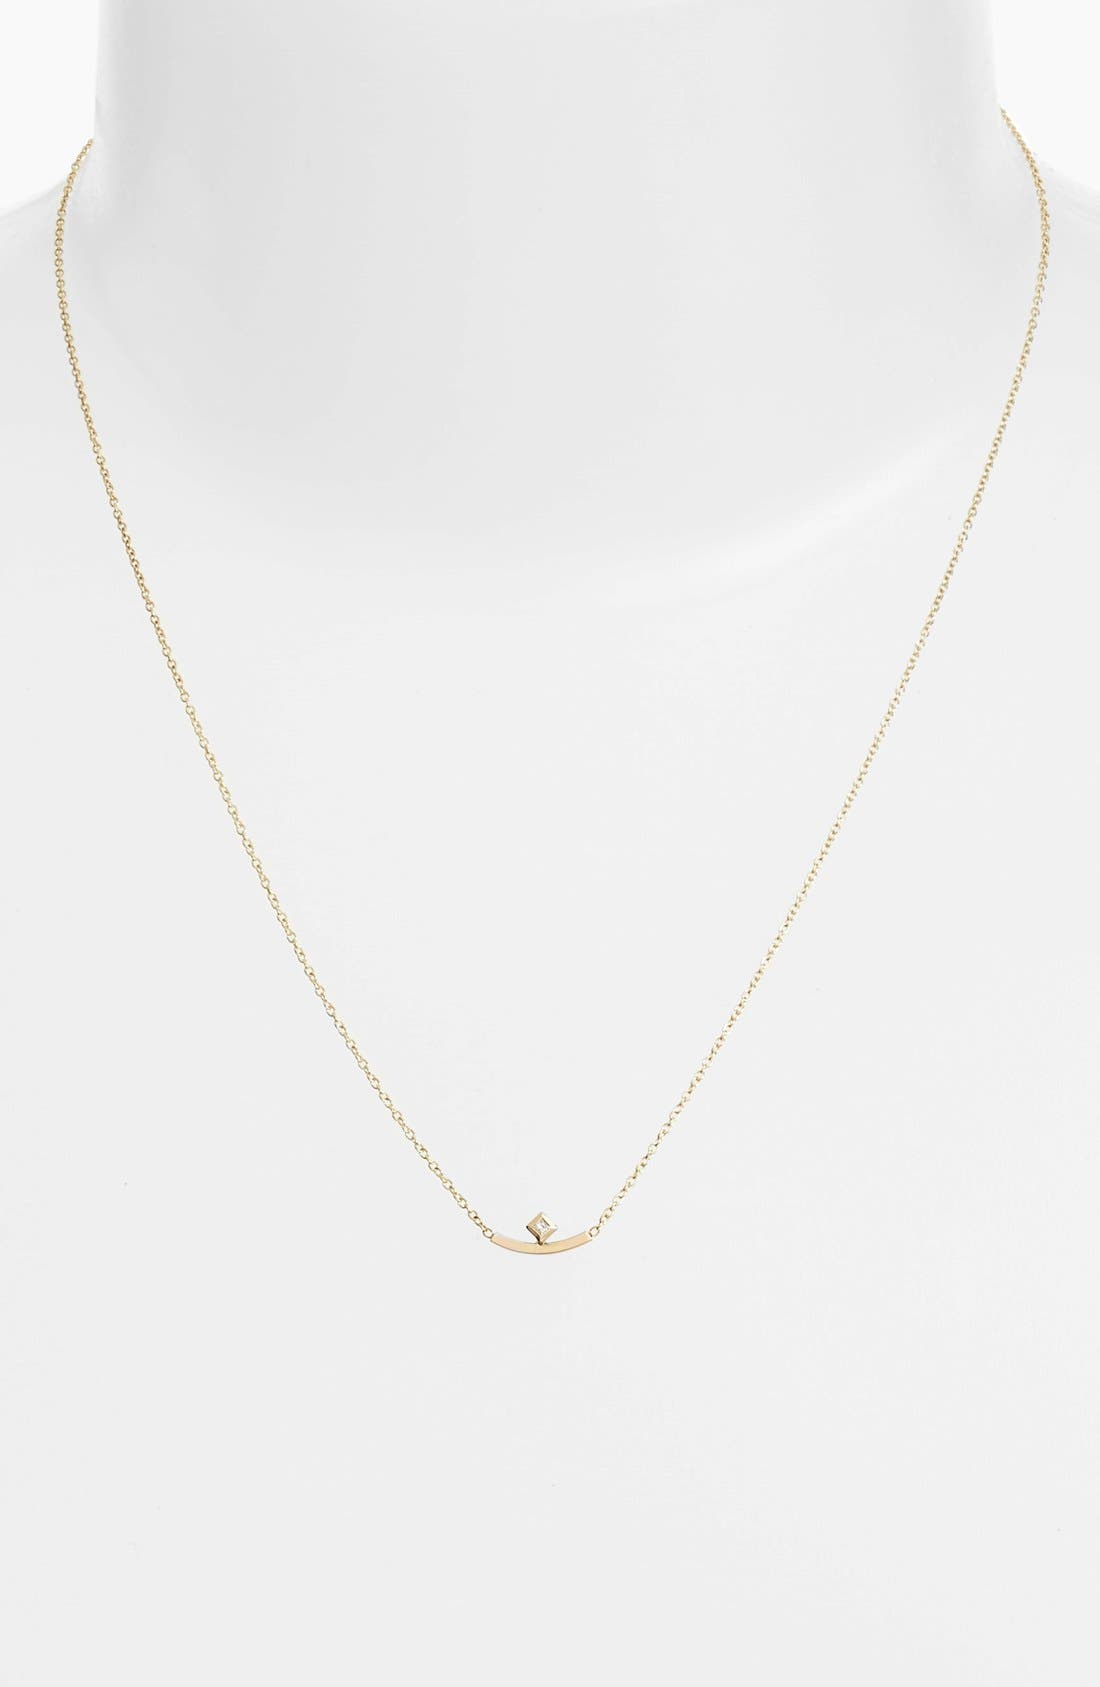 Diamond Curved Bar Necklace,                             Alternate thumbnail 3, color,                             710